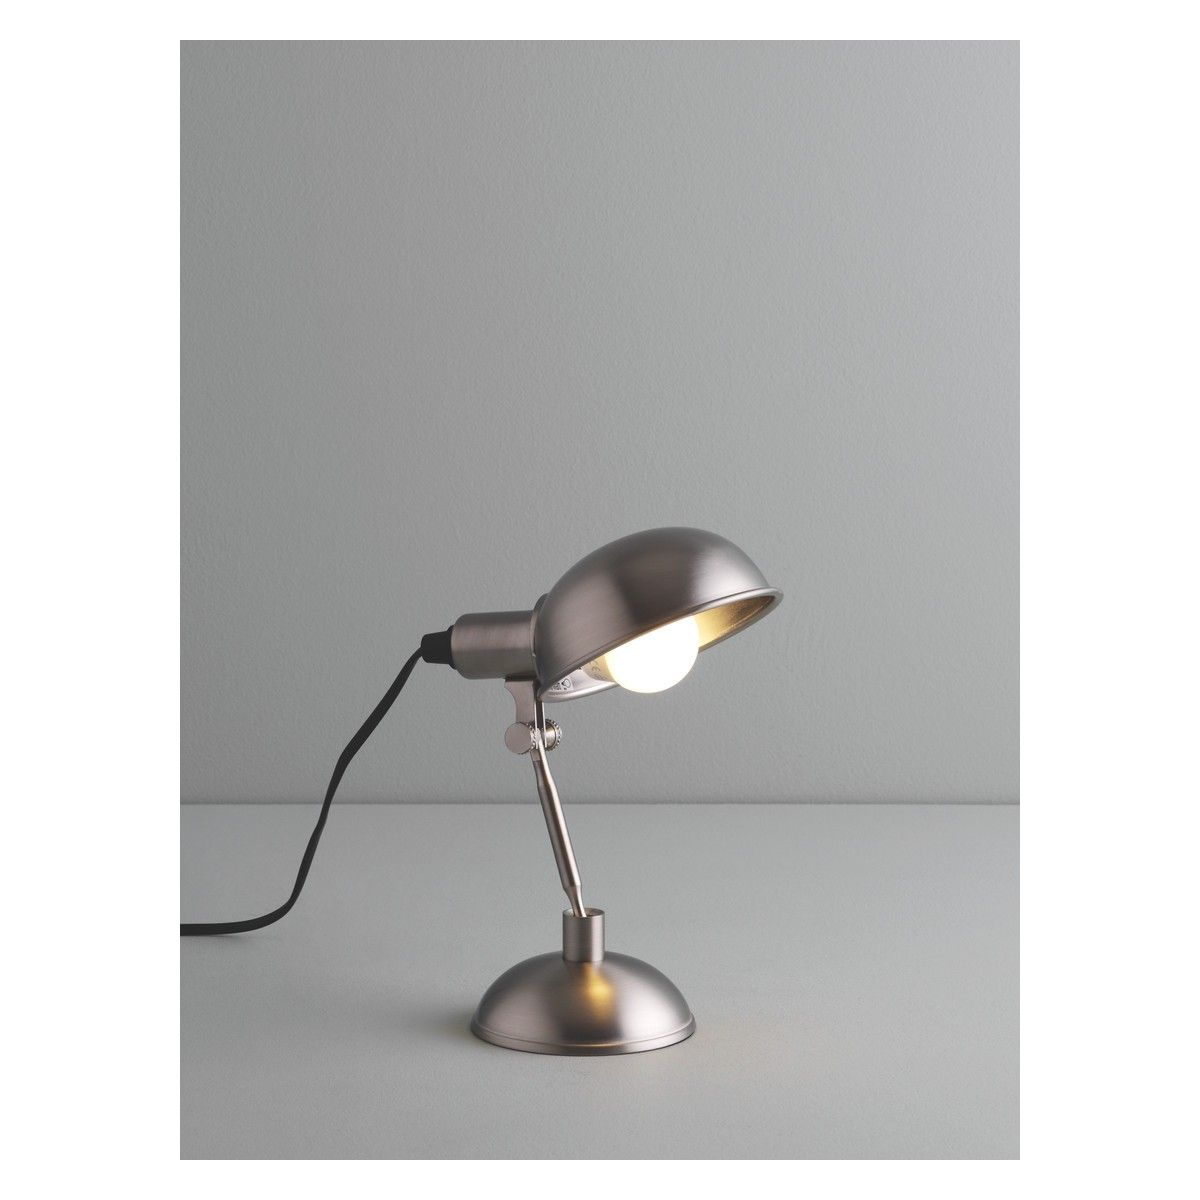 Tommy silver brushed metal desk lamp buy now at habitat uk tommy silver brushed metal desk lamp buy now at habitat uk mozeypictures Choice Image